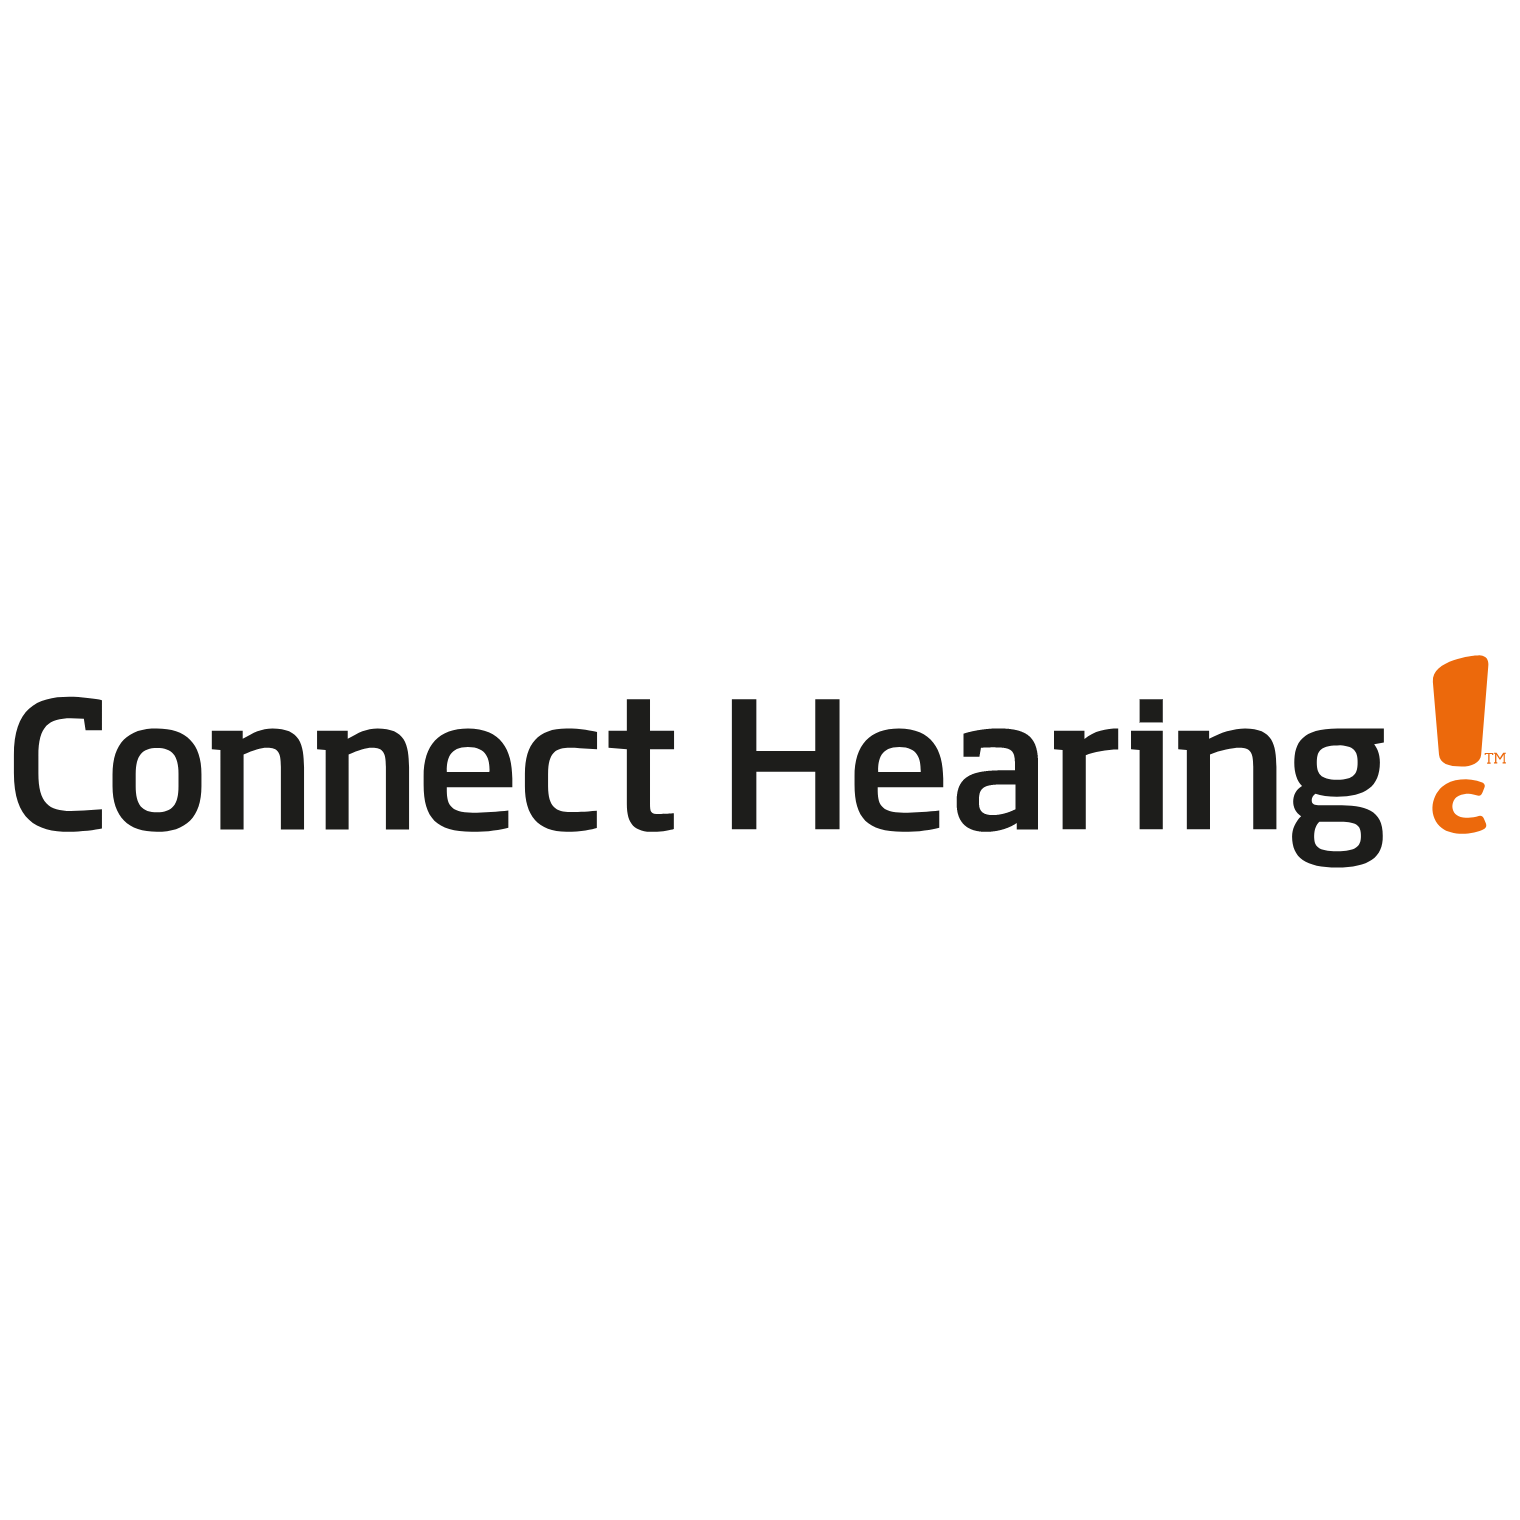 Connect Hearing - Pinjarra, WA 6208 - (08) 9722 6780 | ShowMeLocal.com